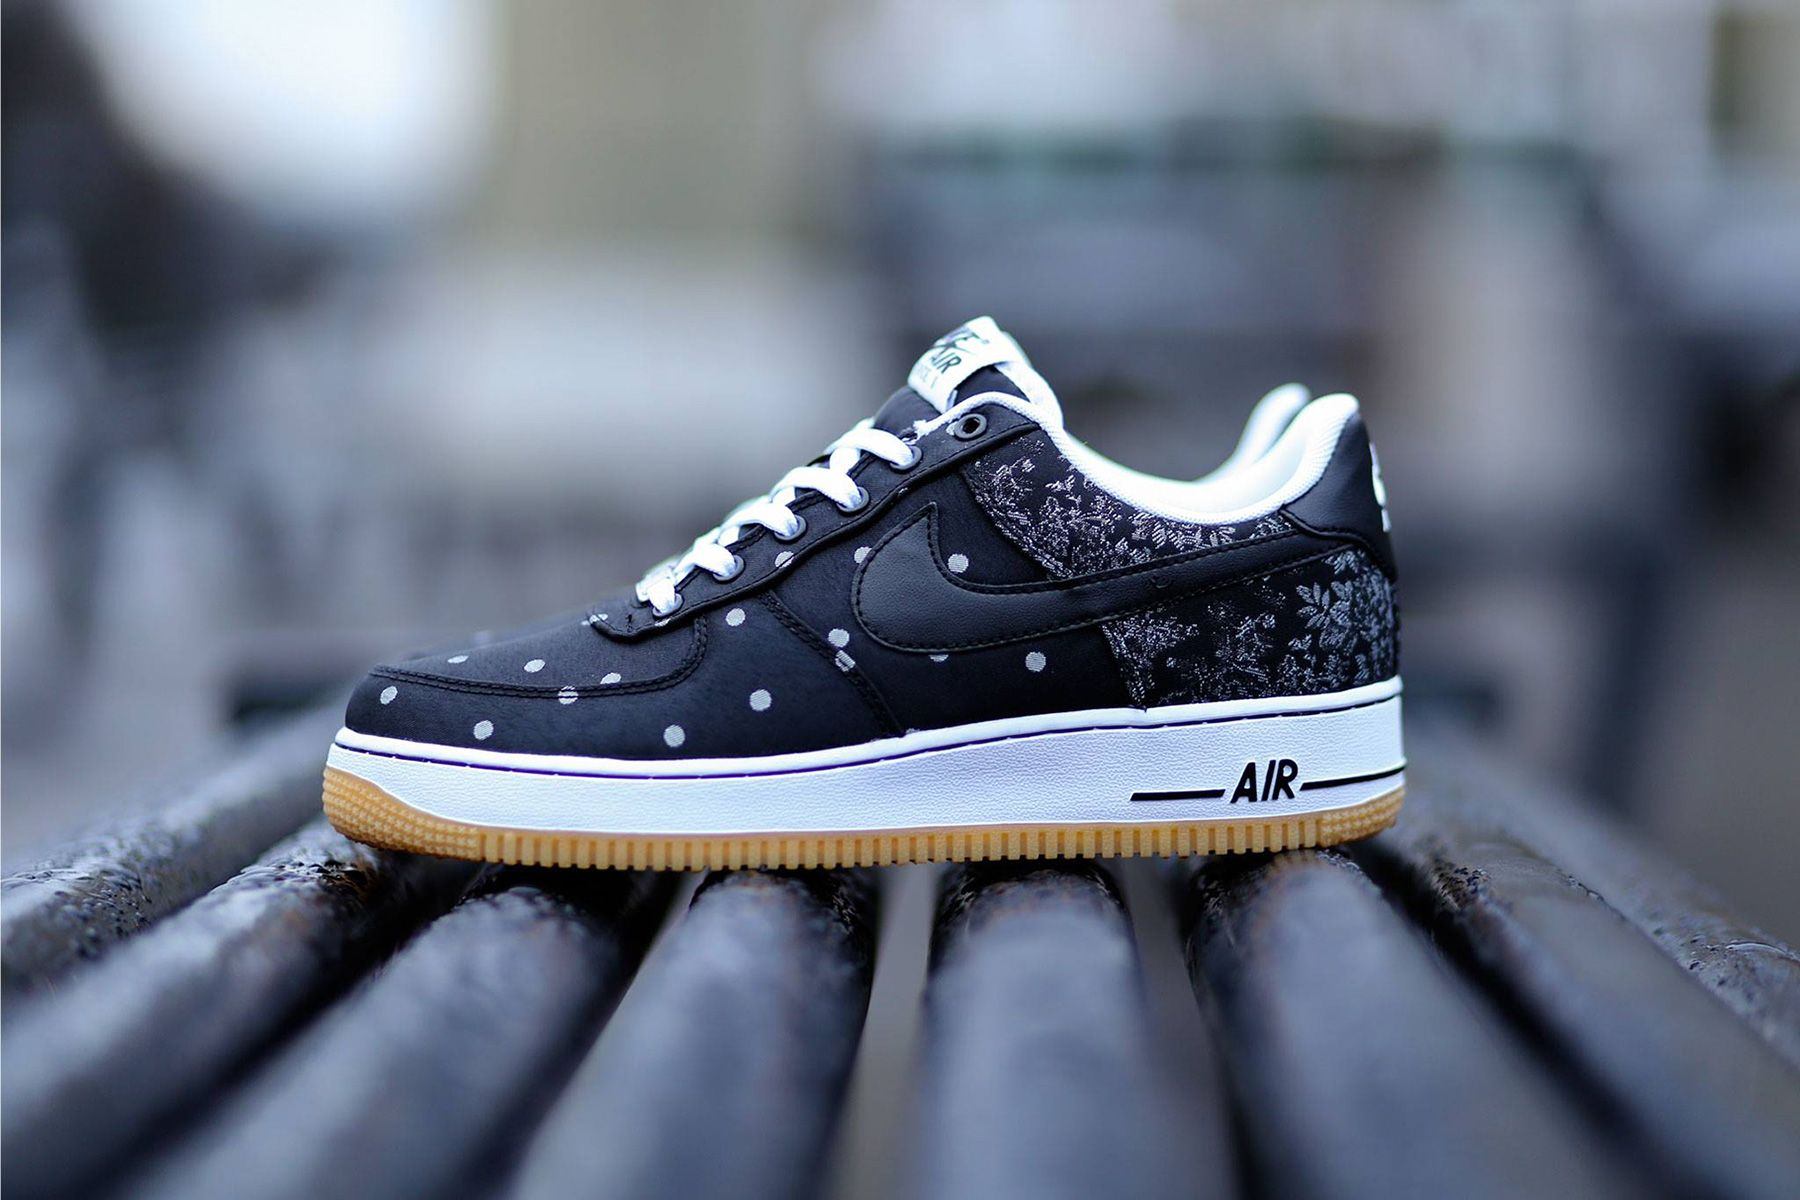 04f063bfda0f The Nike Air Force 1 LV8 sneaker combines two iconic prints on the new  edition. The shoe is dressed in a full black base on the upper with white  polka dots ...